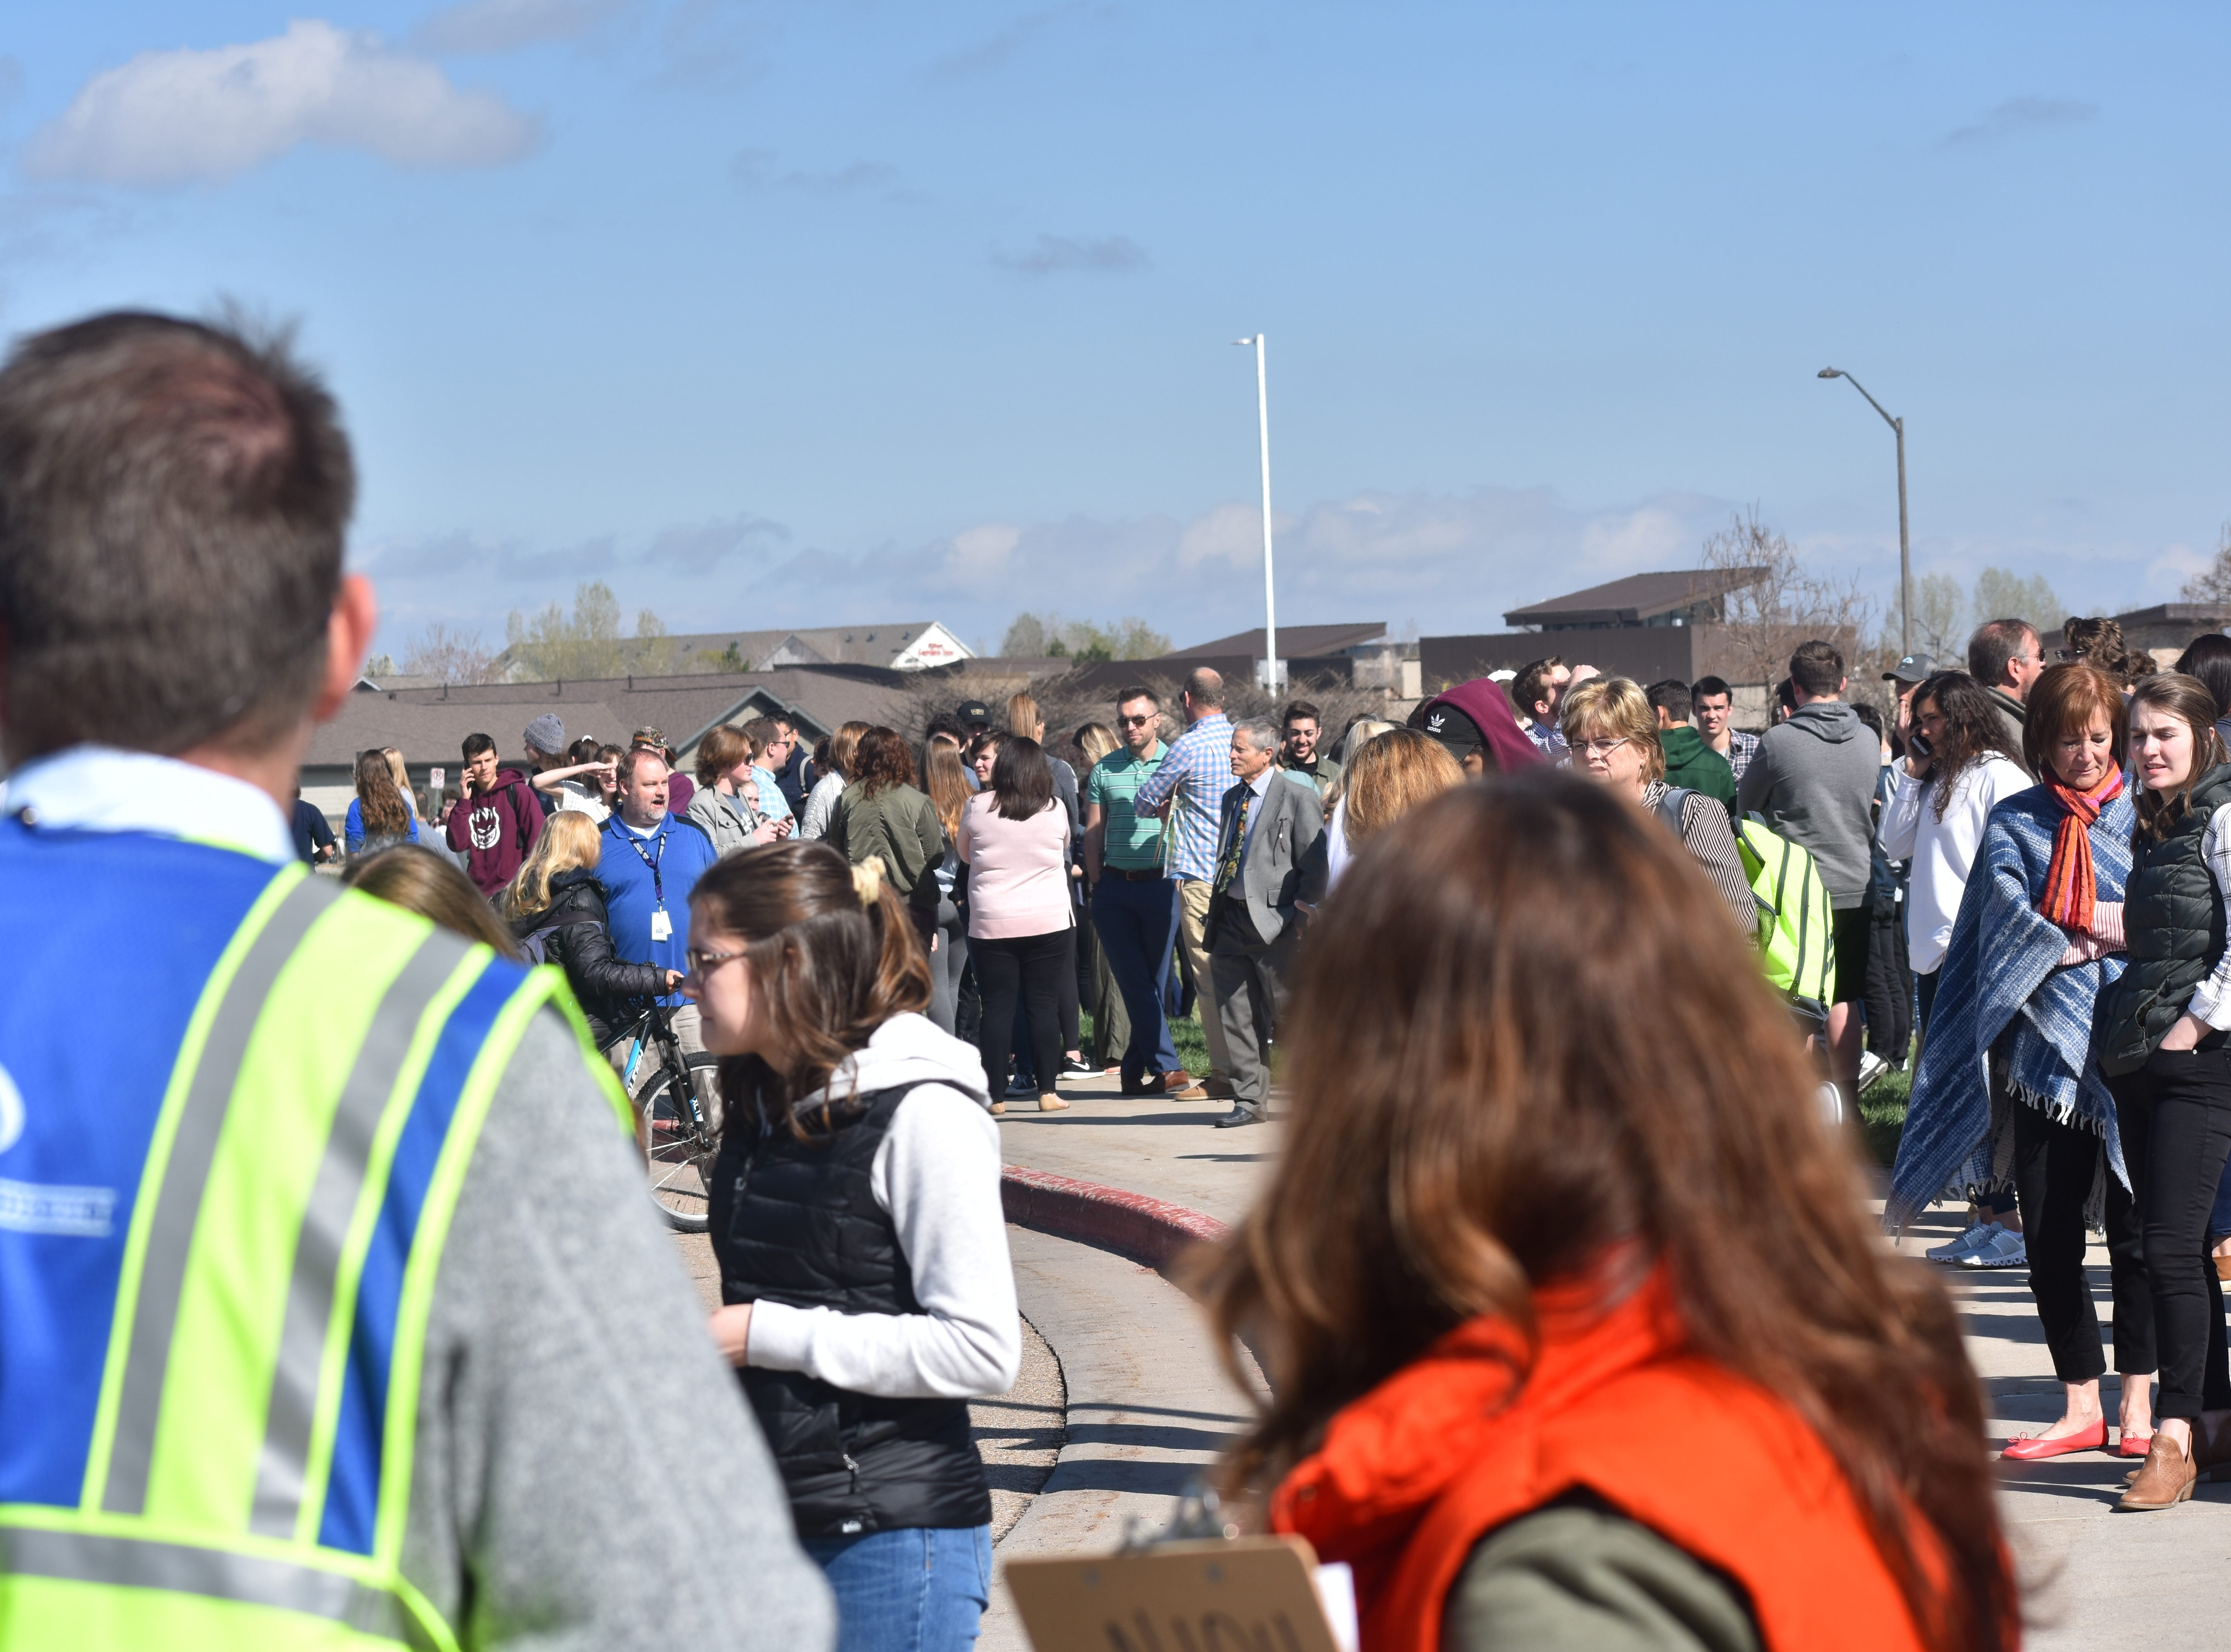 Fossil Ridge High School students were evacuated after a fire broke out in the industrial arts building of the school Thursday.